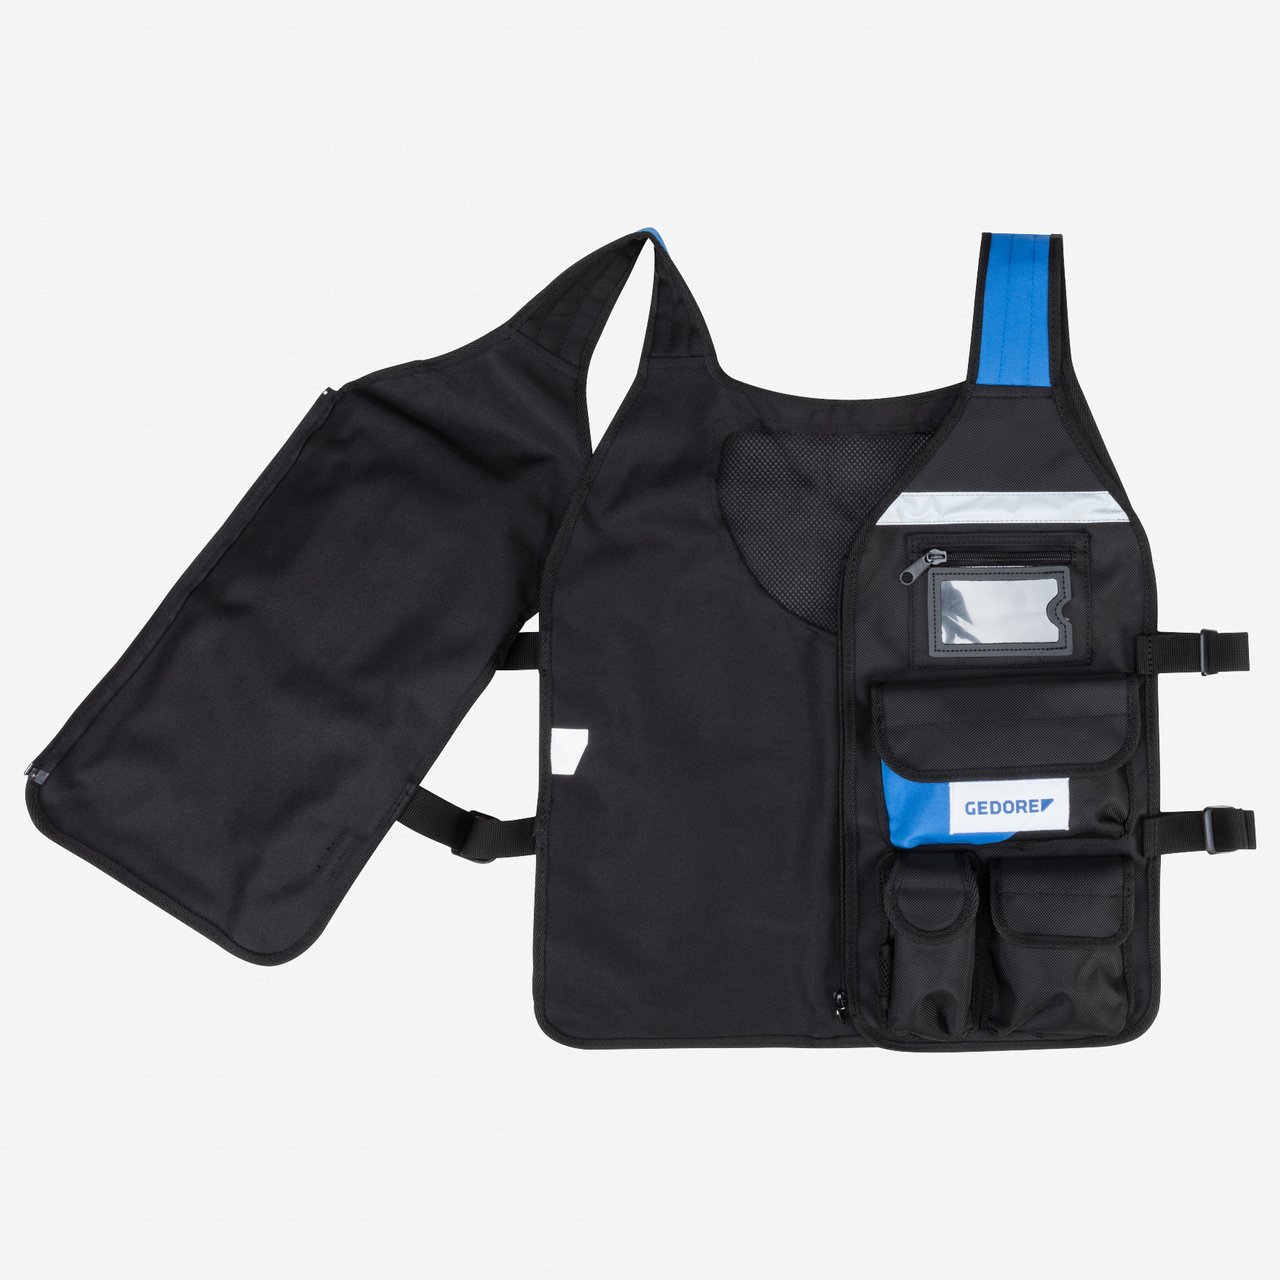 Gedore WT 1056 13 Tool vest - KC Tool